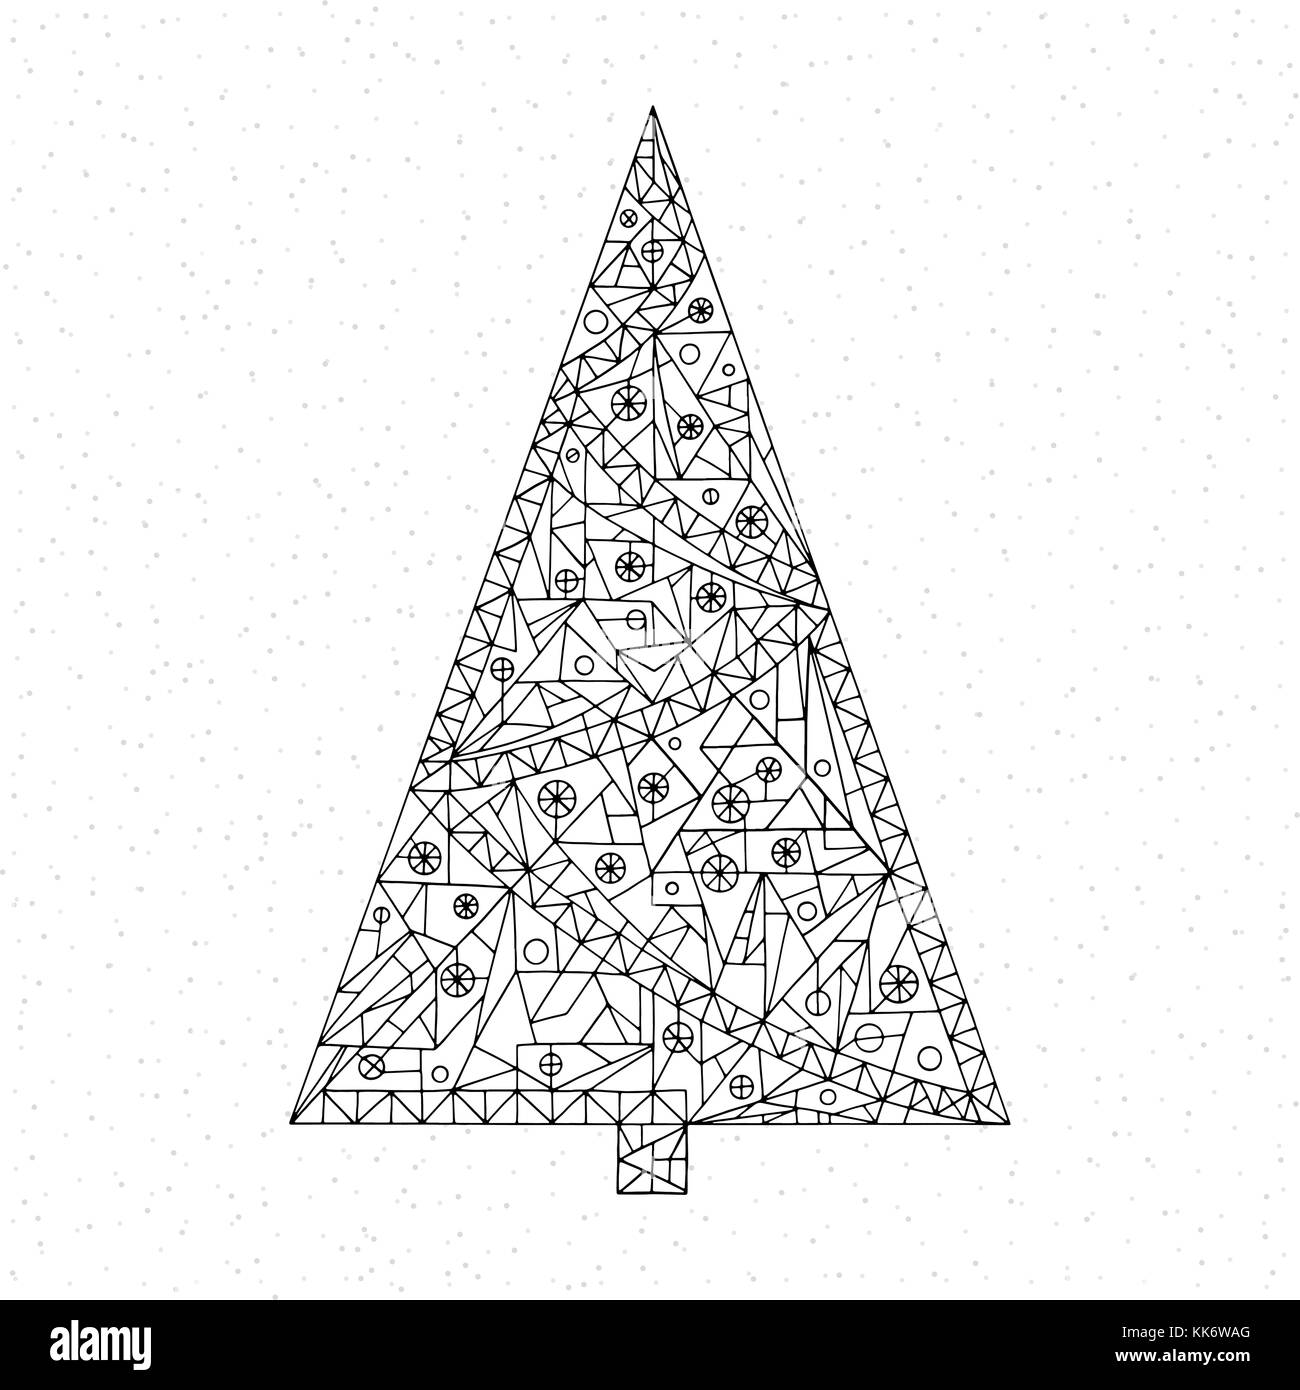 Christmas Tree Coloring Page Hand Drawn Abstract Winter Holidays Vector Illustration Xmas Background In Modern Style Happy New Year Art